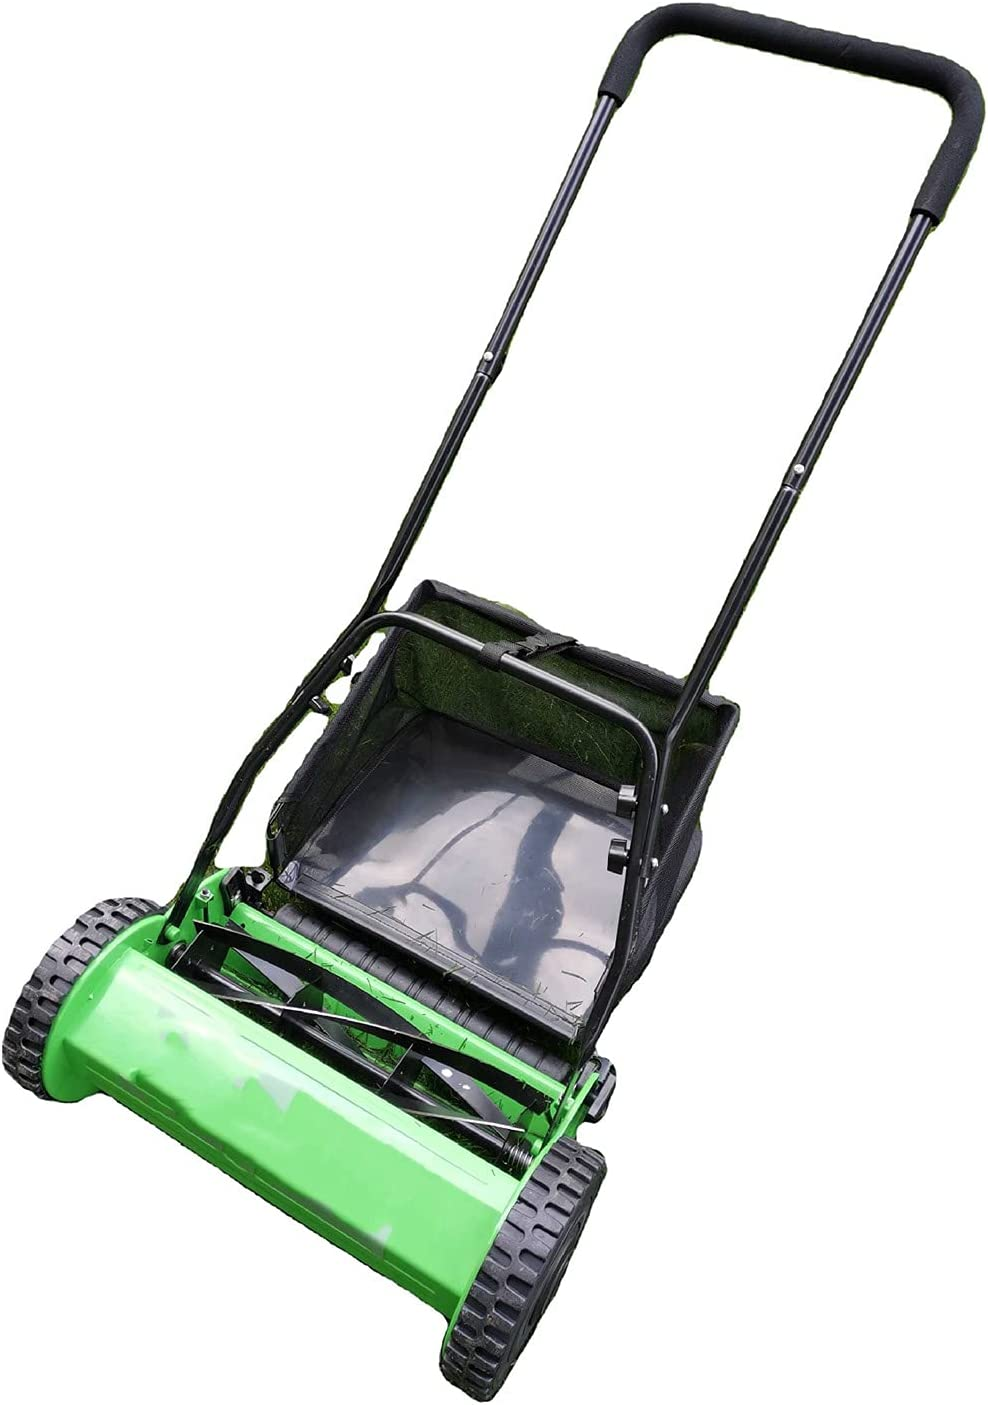 service LHMYGHFDP Manual Hand Push Lawnmower Sm Agricultural Mowing Lawn Limited price